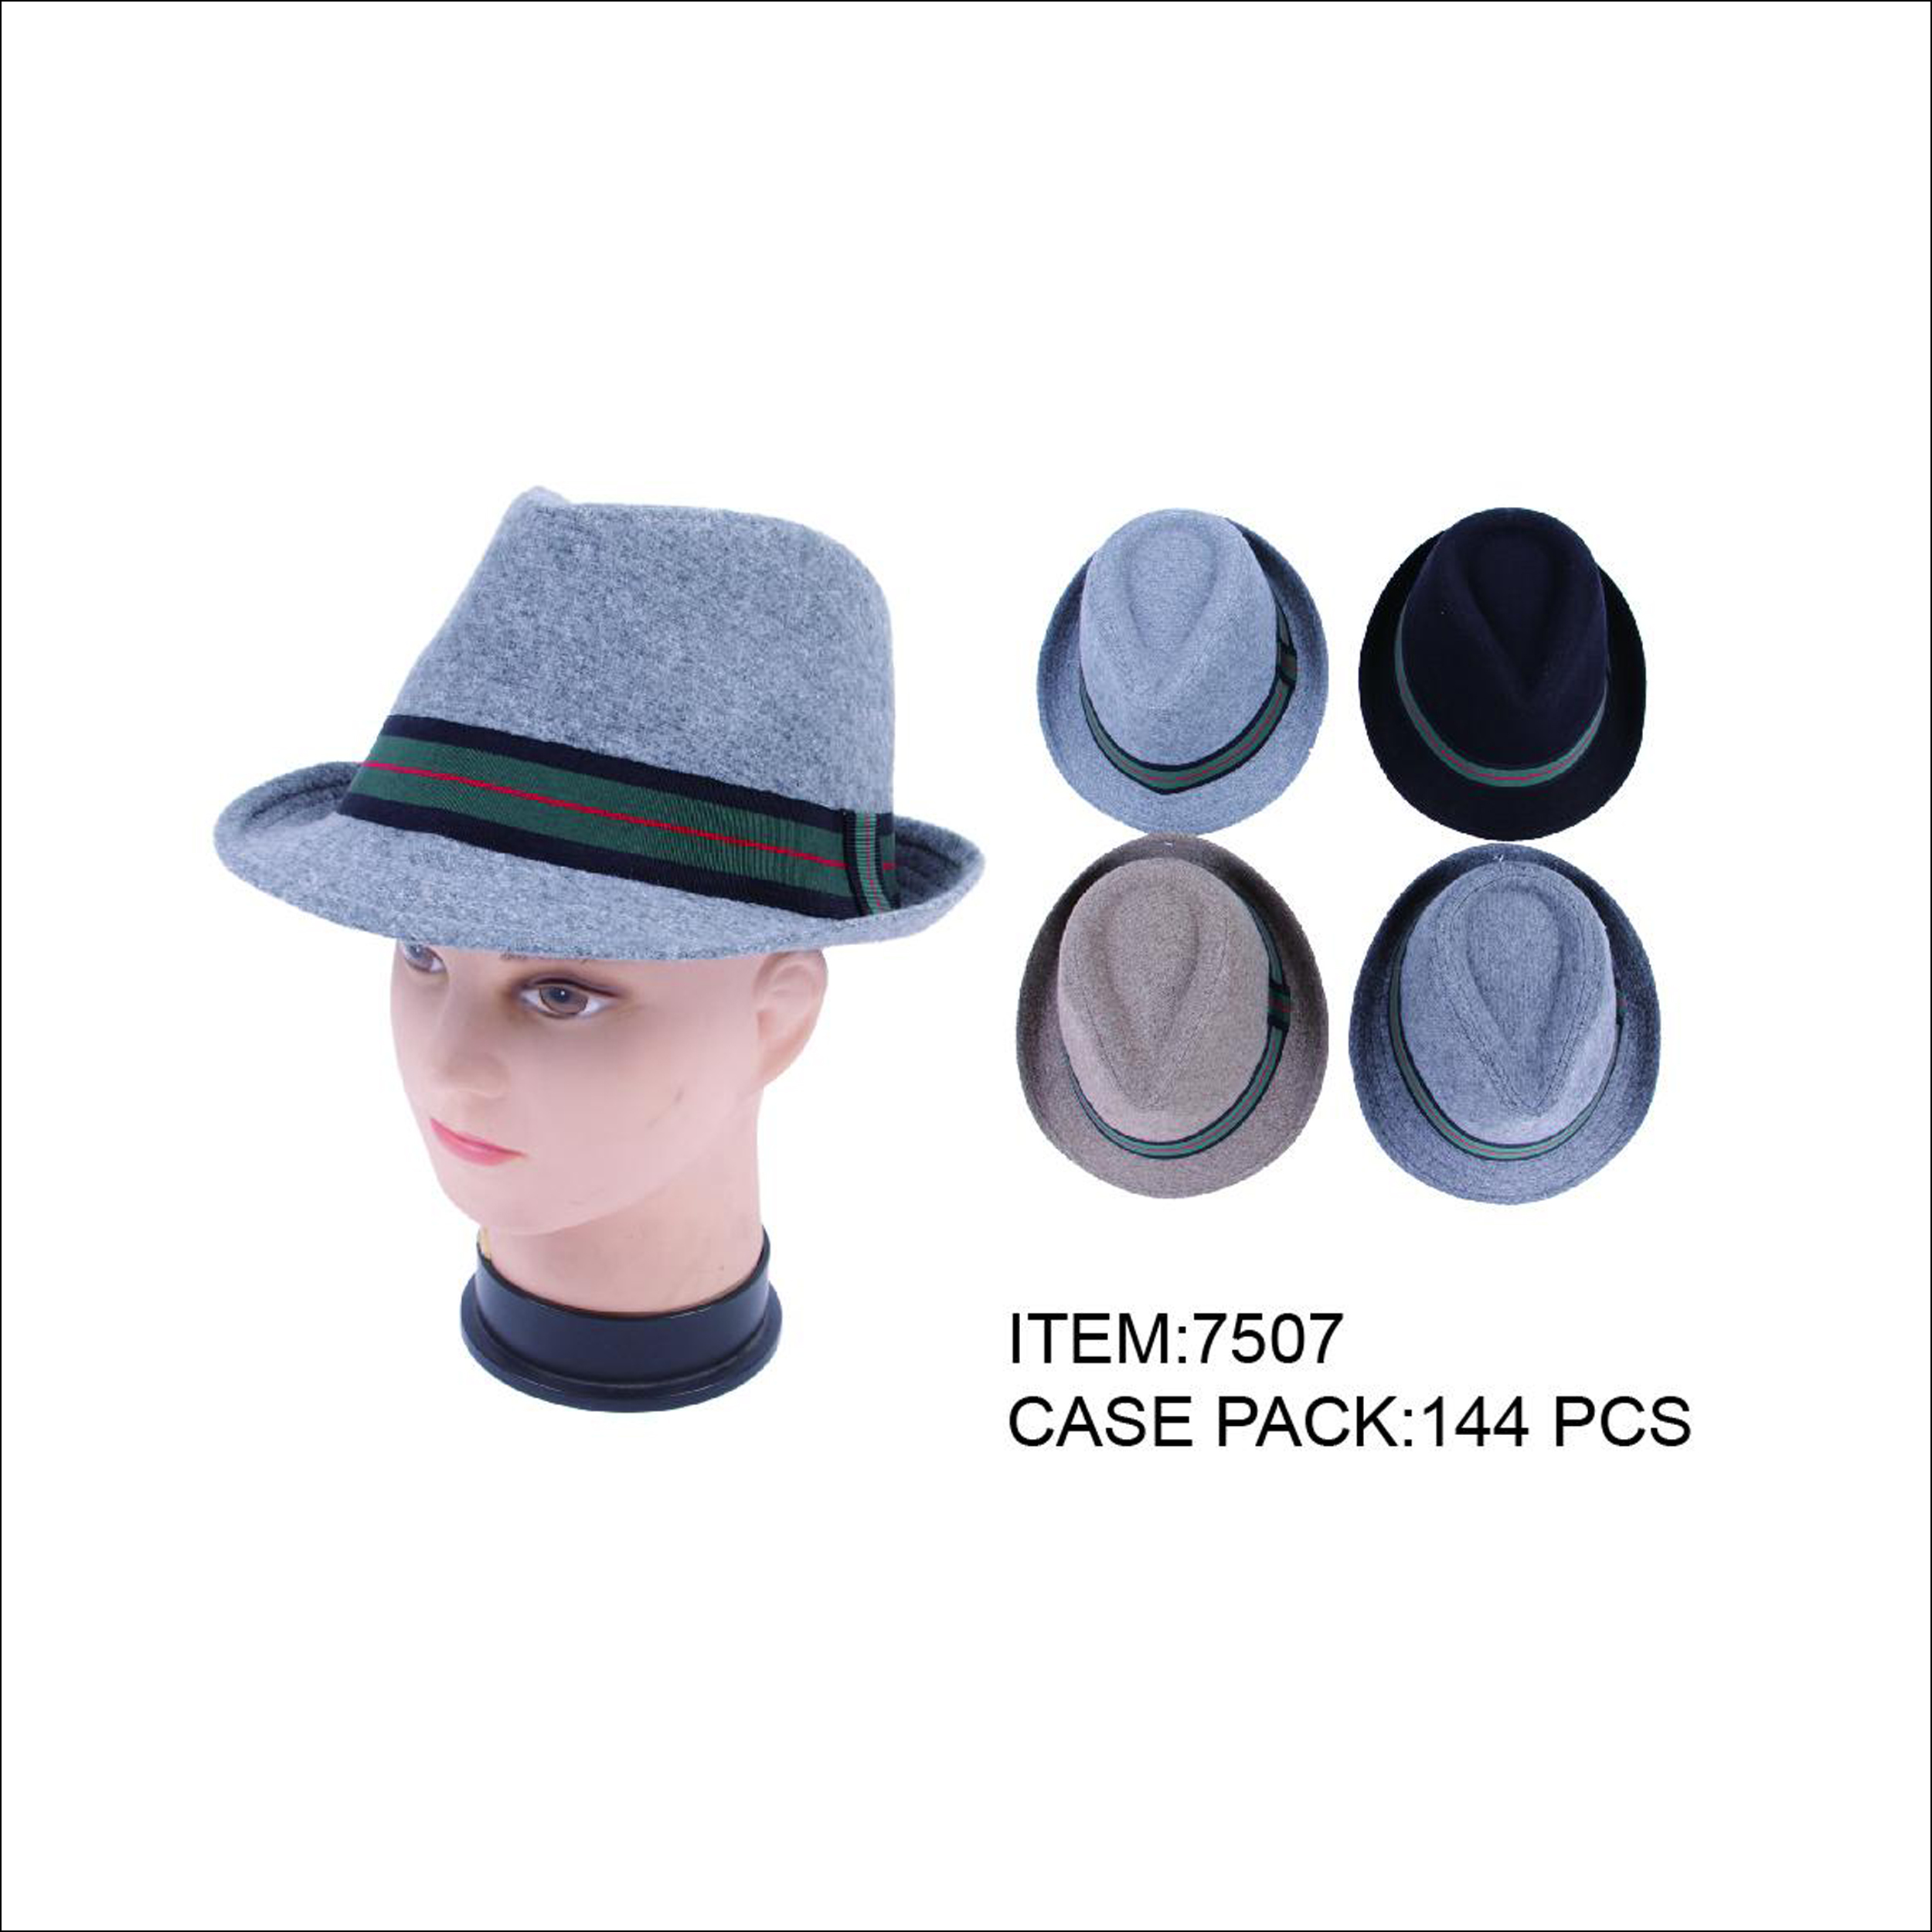 fcd6c66d82f Mens Winter Hats   QB TRADING INC. General Merchadise Wholesale ...